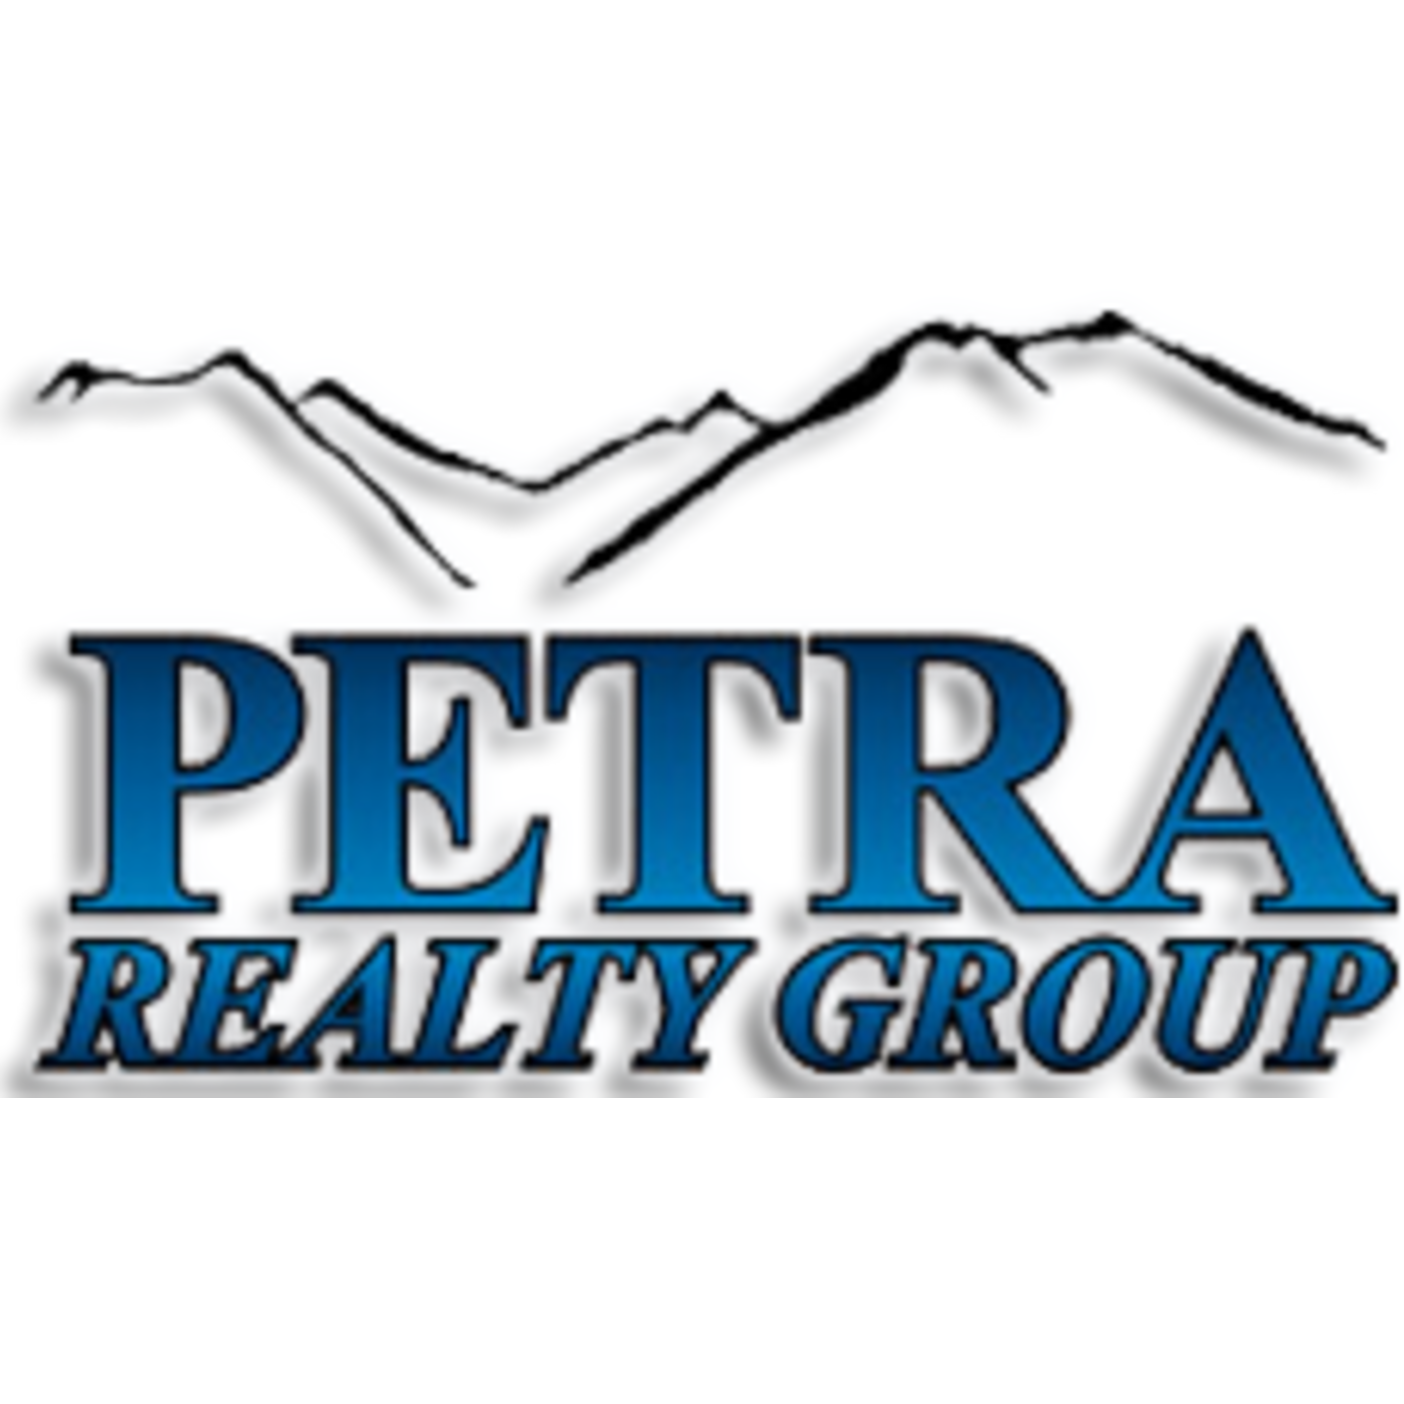 Jason L. Brown - Petra Realty Group